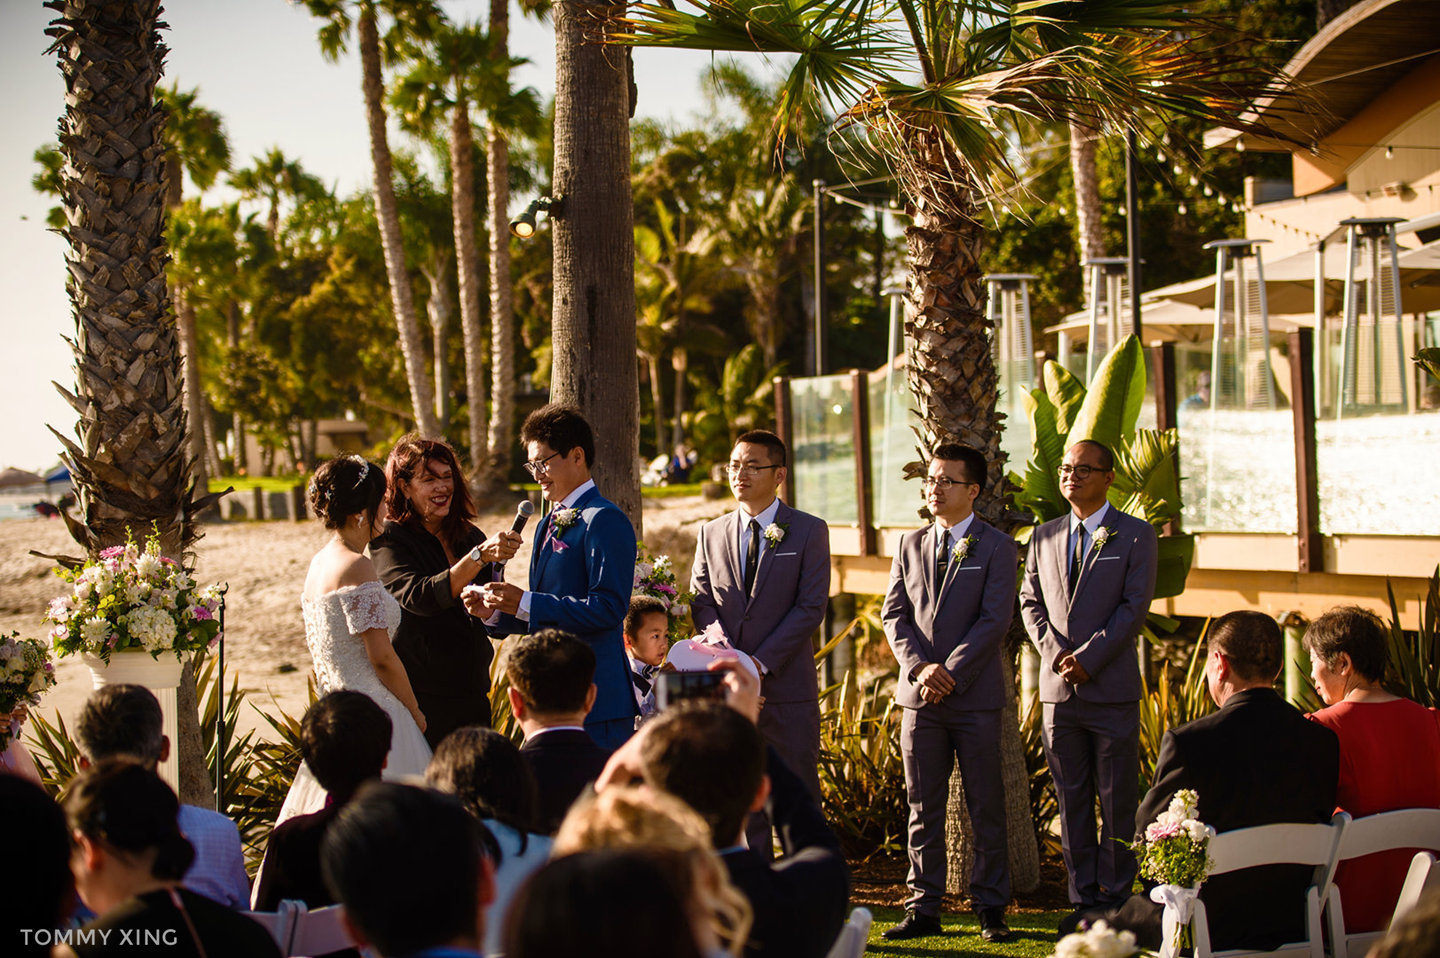 Paradise Point Resort Wedding Xiaolu & Bin San Diego 圣地亚哥婚礼摄影跟拍 Tommy Xing Photography 洛杉矶婚礼婚纱照摄影师 138.jpg